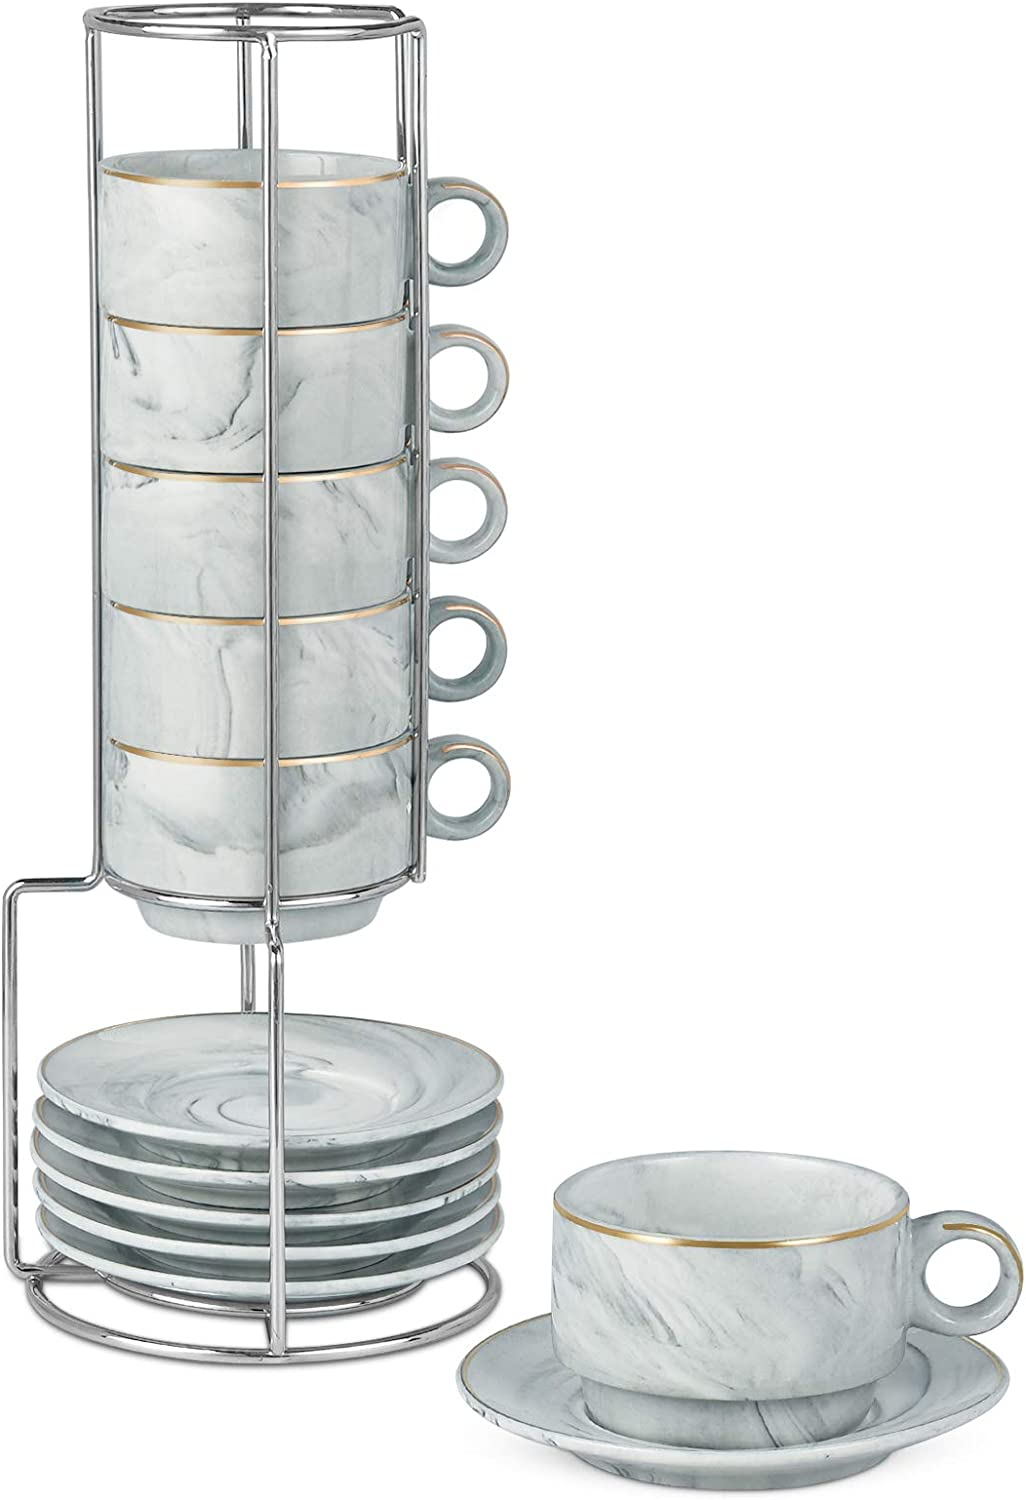 Espresso Mugs Set of 6 with Rack Marble Stackable Espresso Cups with Saucers and Metal Stand Demitasse Cups Designed for Espresso, Latte, Cafe, Mocha 3OZ Gray